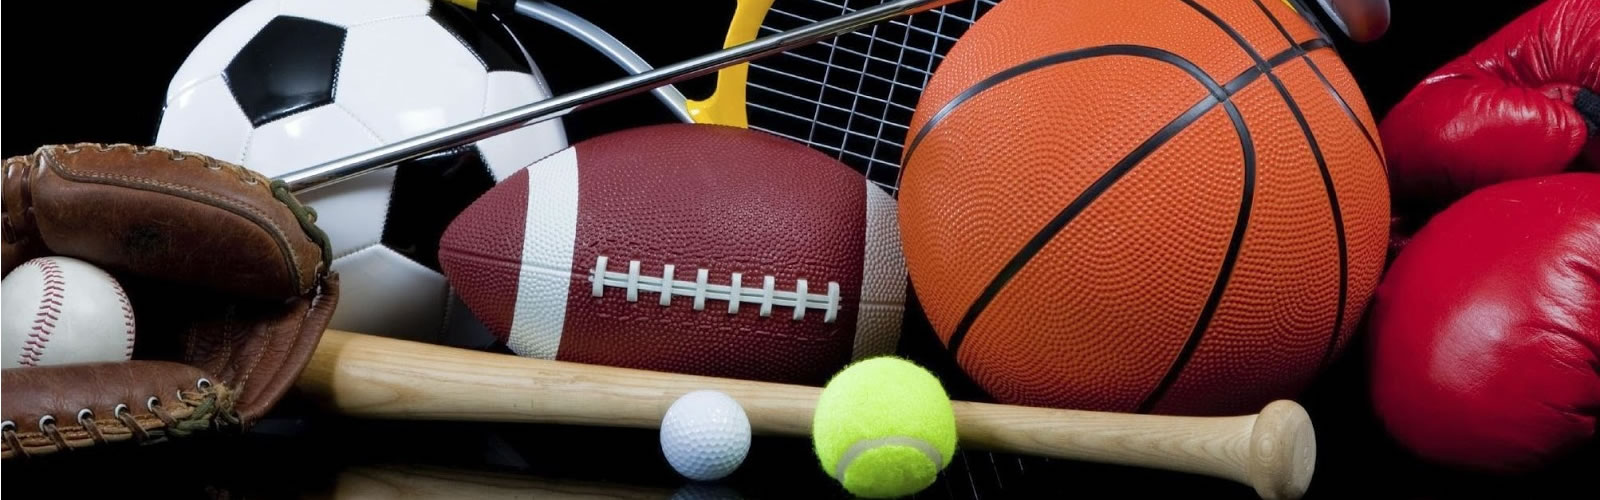 Sports Equipment Manufacturers Insurance